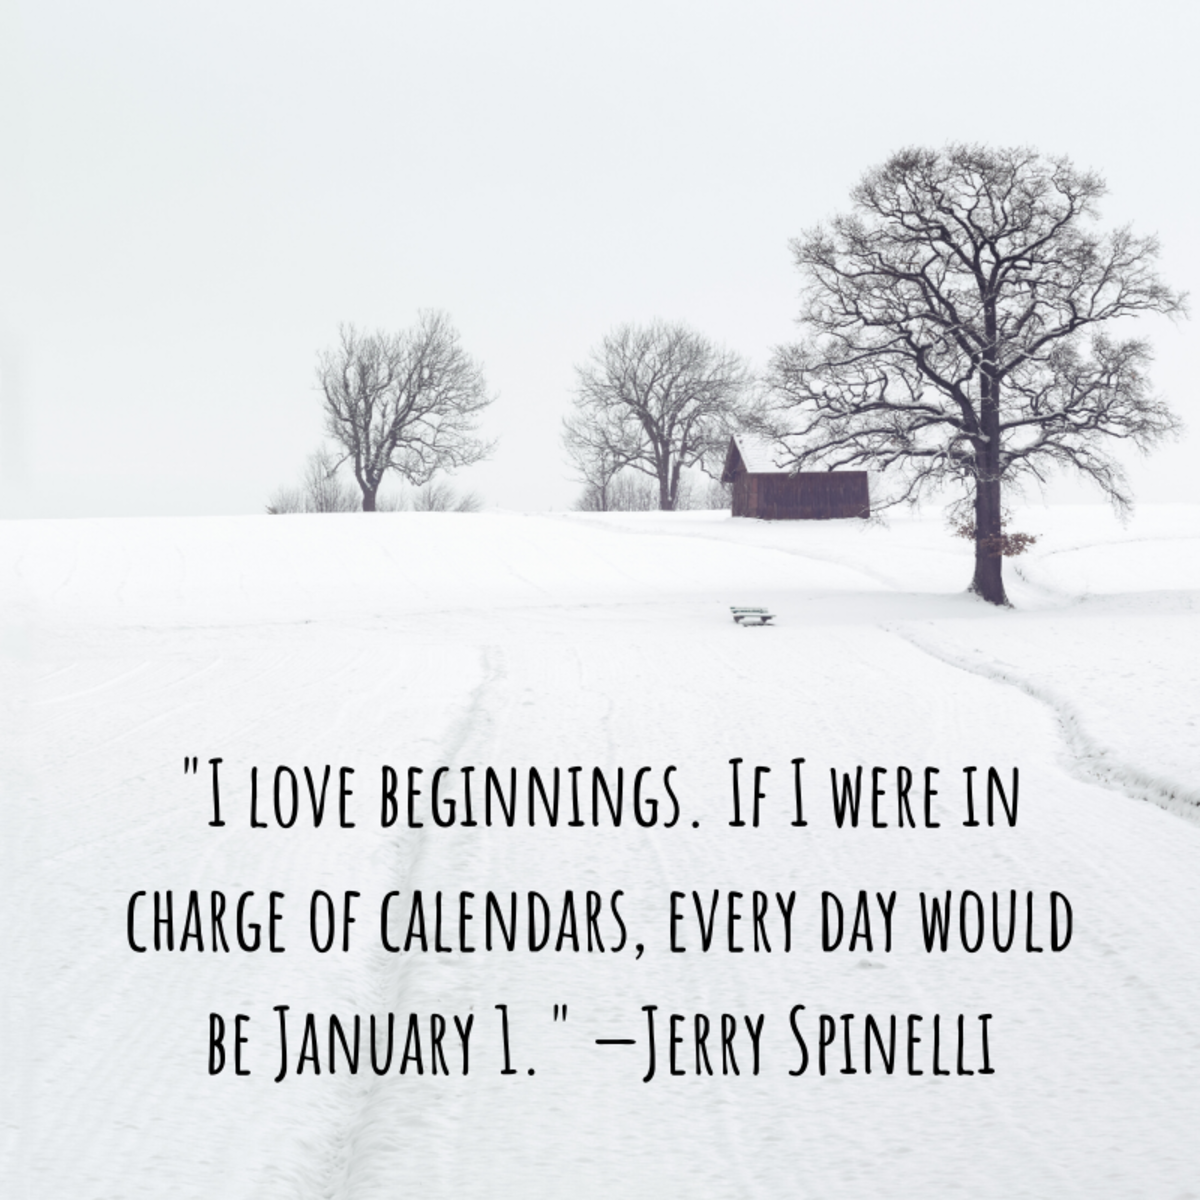 January excites some people and scares others. How do you feel about it?